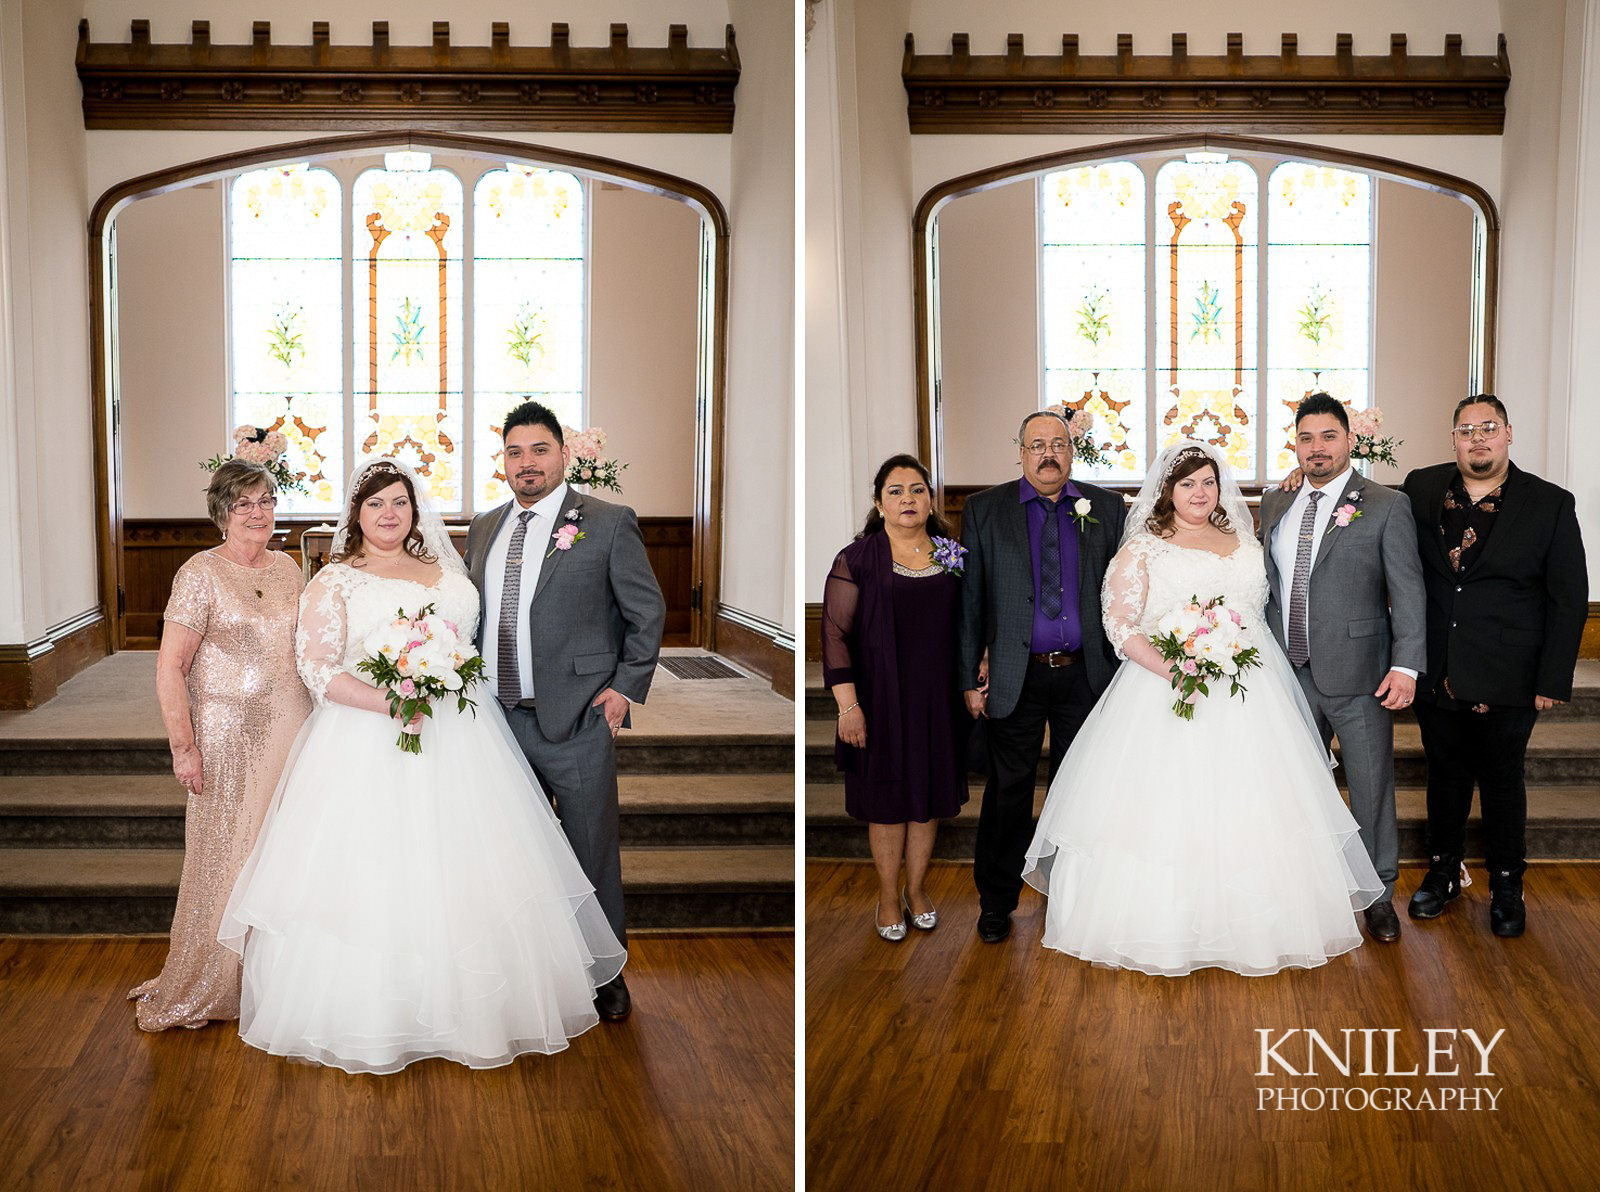 049b - Westminster Chapel - Rochester NY wedding photo - Kniley Photography.jpg